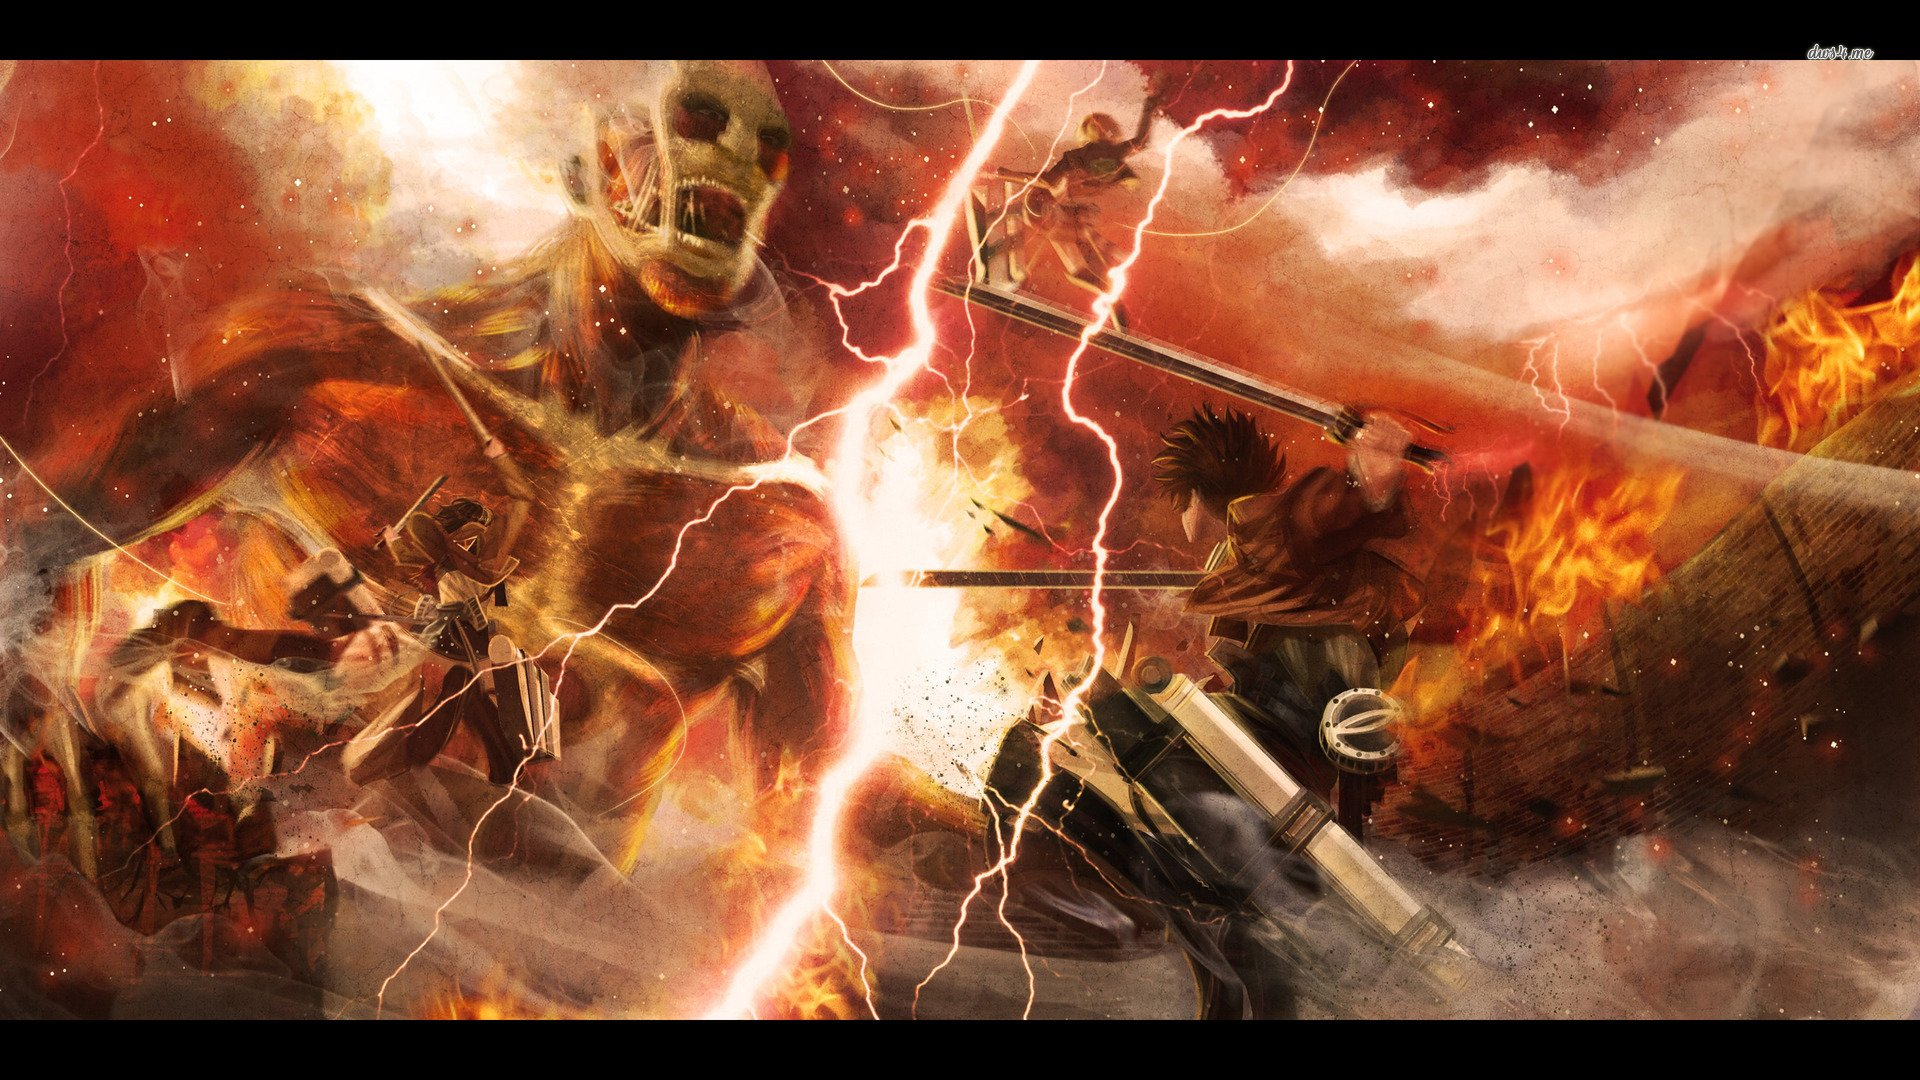 download Some speculate that Attack on Titan Season 2 will 1920x1080